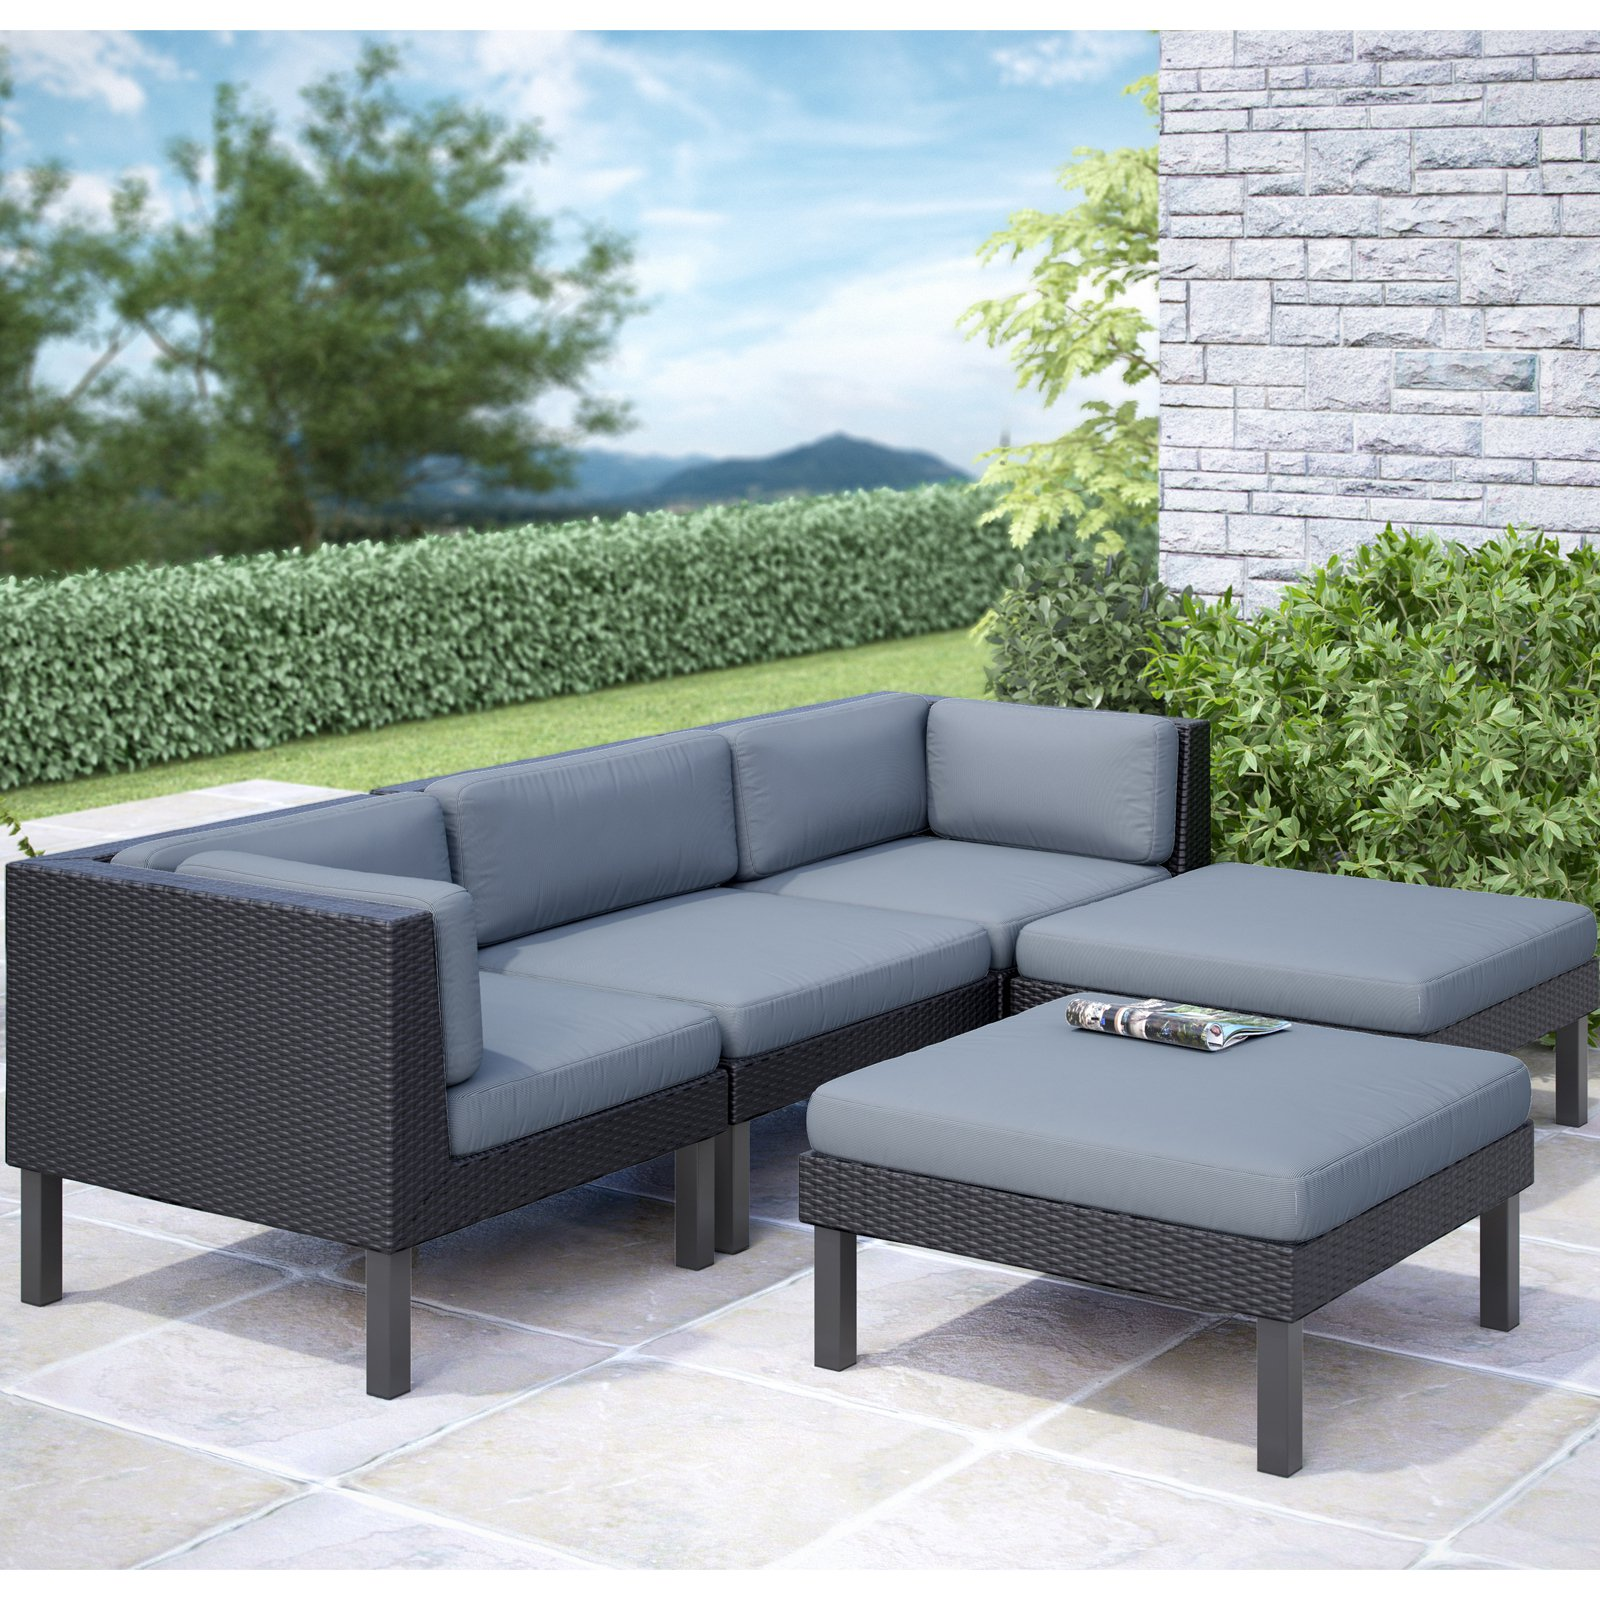 sofa lounger outdoor belize all weather wicker corliving oakland 5pc with chaise lounge patio set dove grey cushions walmart com